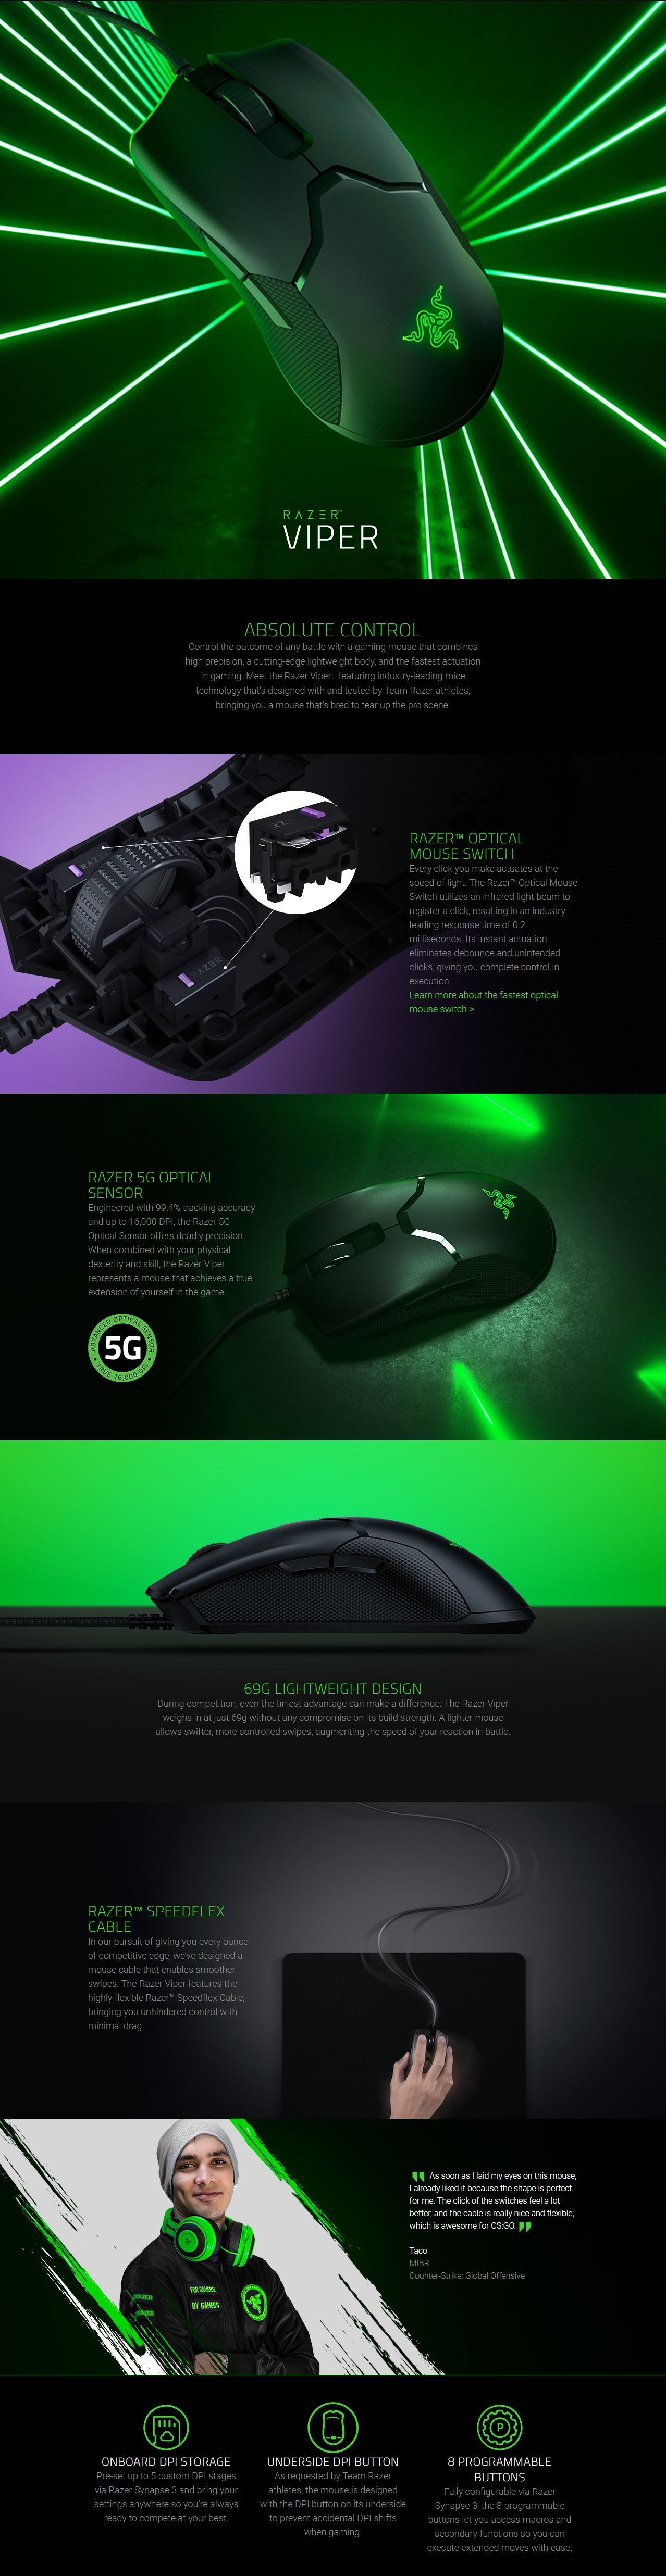 A large marketing image providing additional information about the product Razer Viper Lightweight Chroma RGB Optical Gaming Mouse - Additional alt info not provided